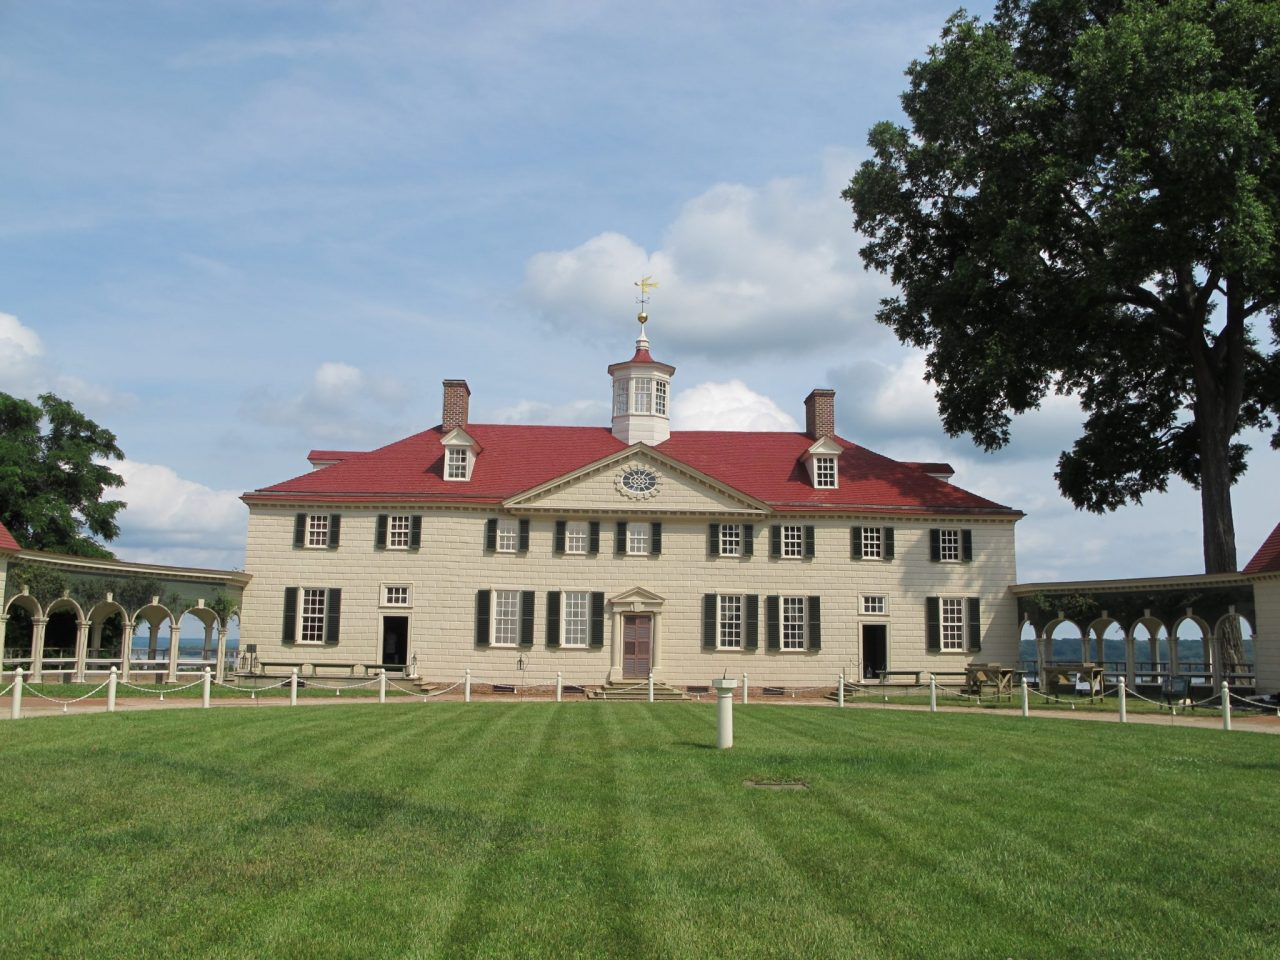 George Washington's estate in Mount Vernon, VA